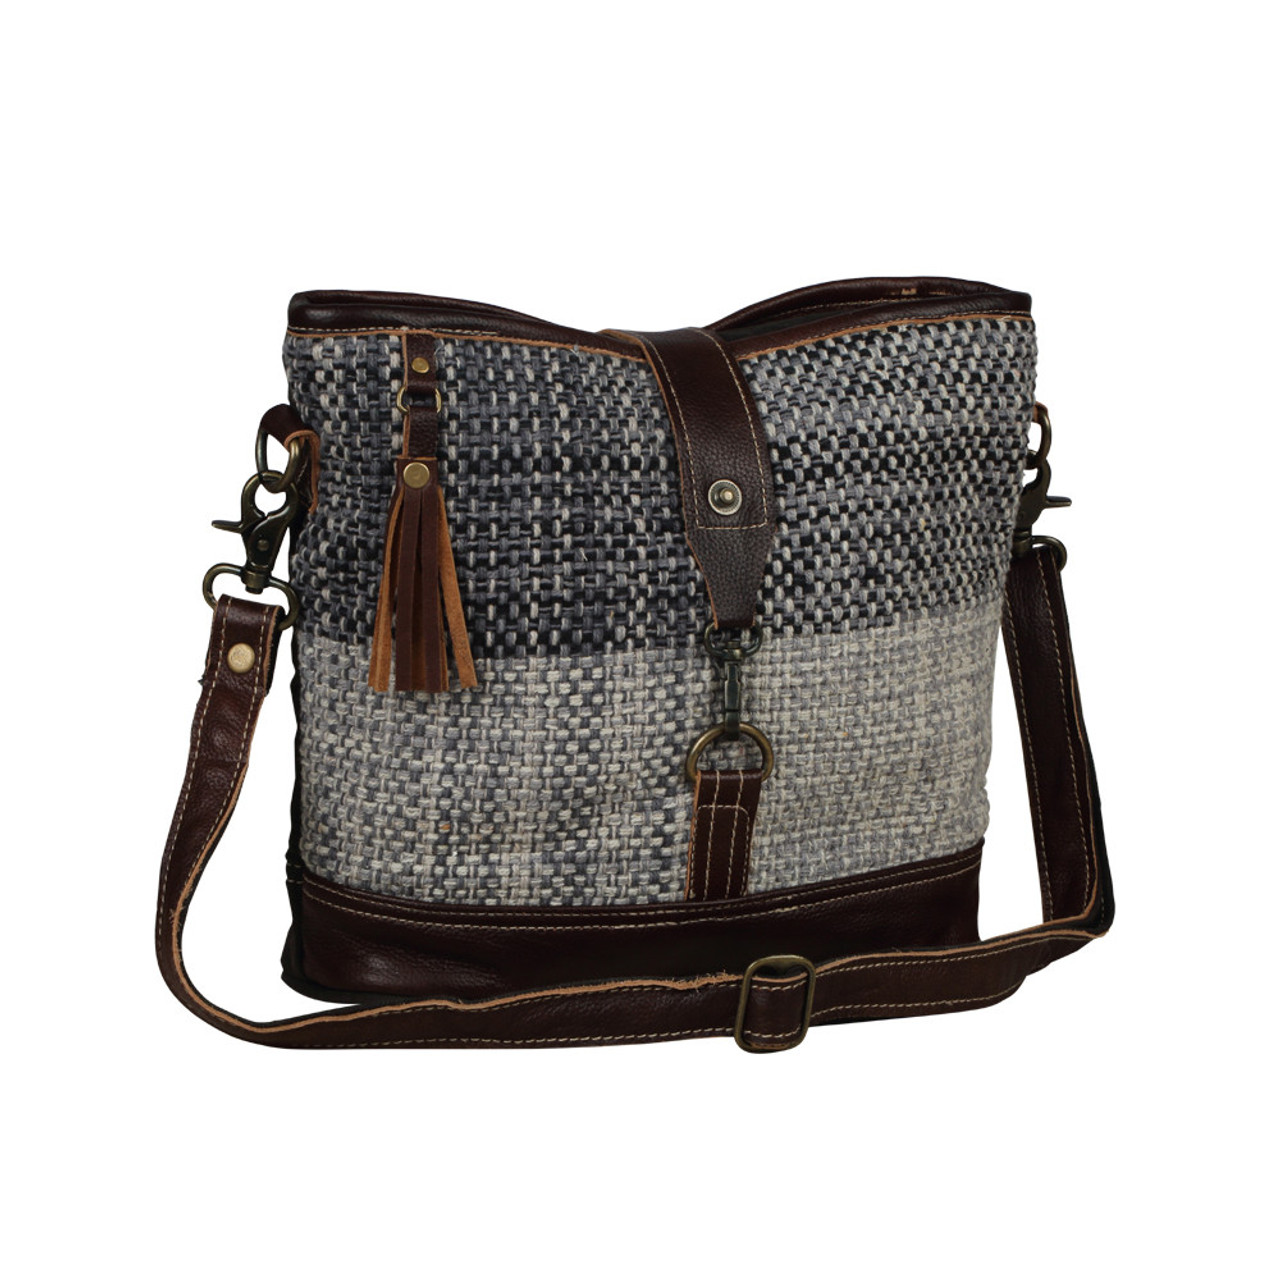 Leather, canvas & rug tote. The front has a neutral woven pattern with clasp and main zipper closure. The back is solid canvas with pocket and zipper. Interior has double open pockets and a single pocket with zipper.